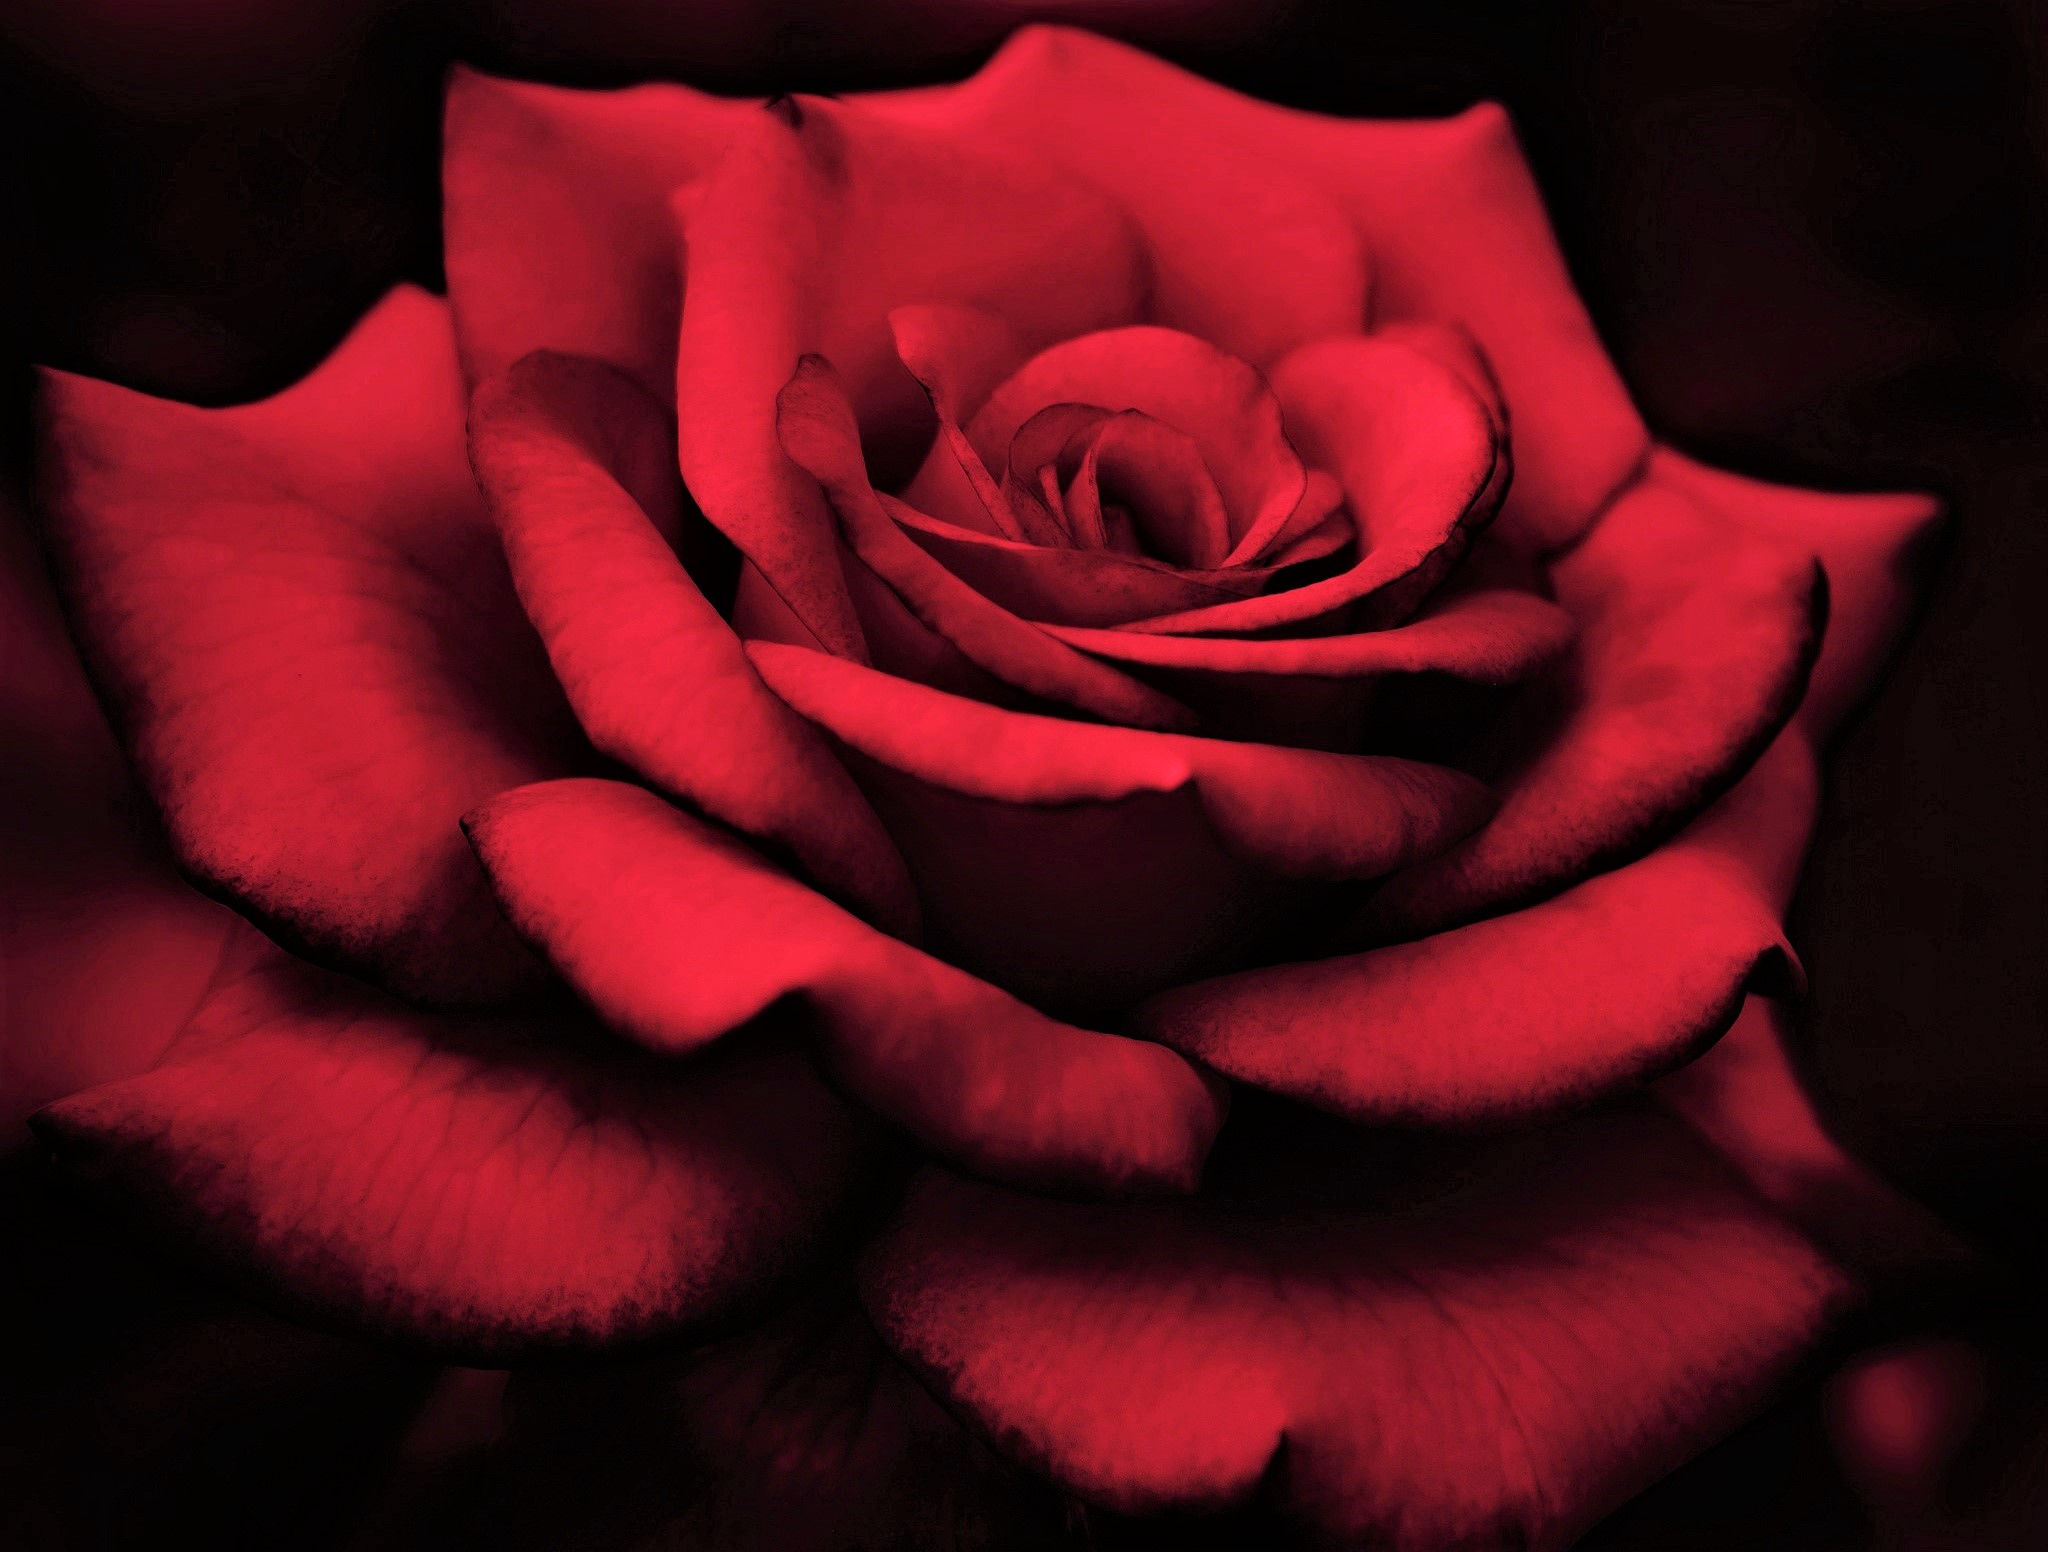 Flower Red Rose Close Up Red Flower Macro 2048x1552